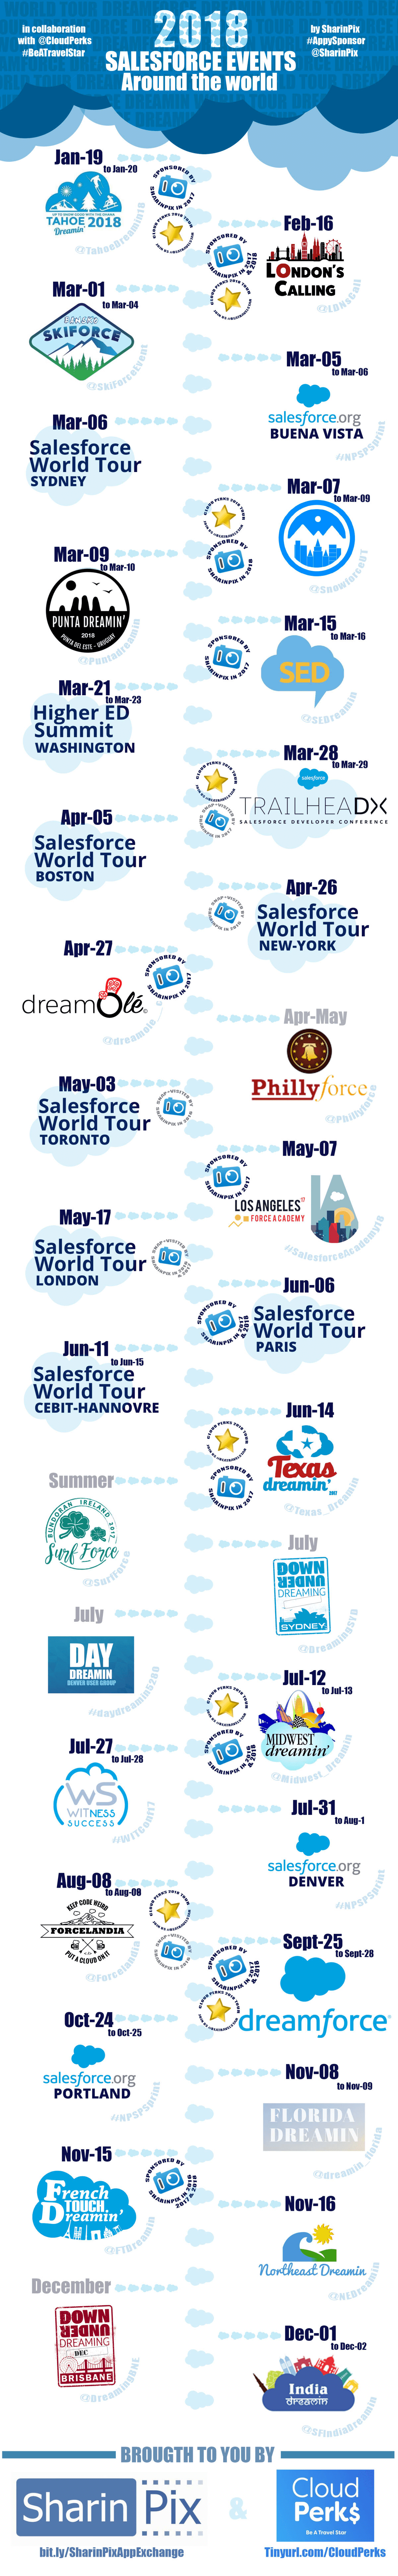 Salesforce Events of 2018   Infographic